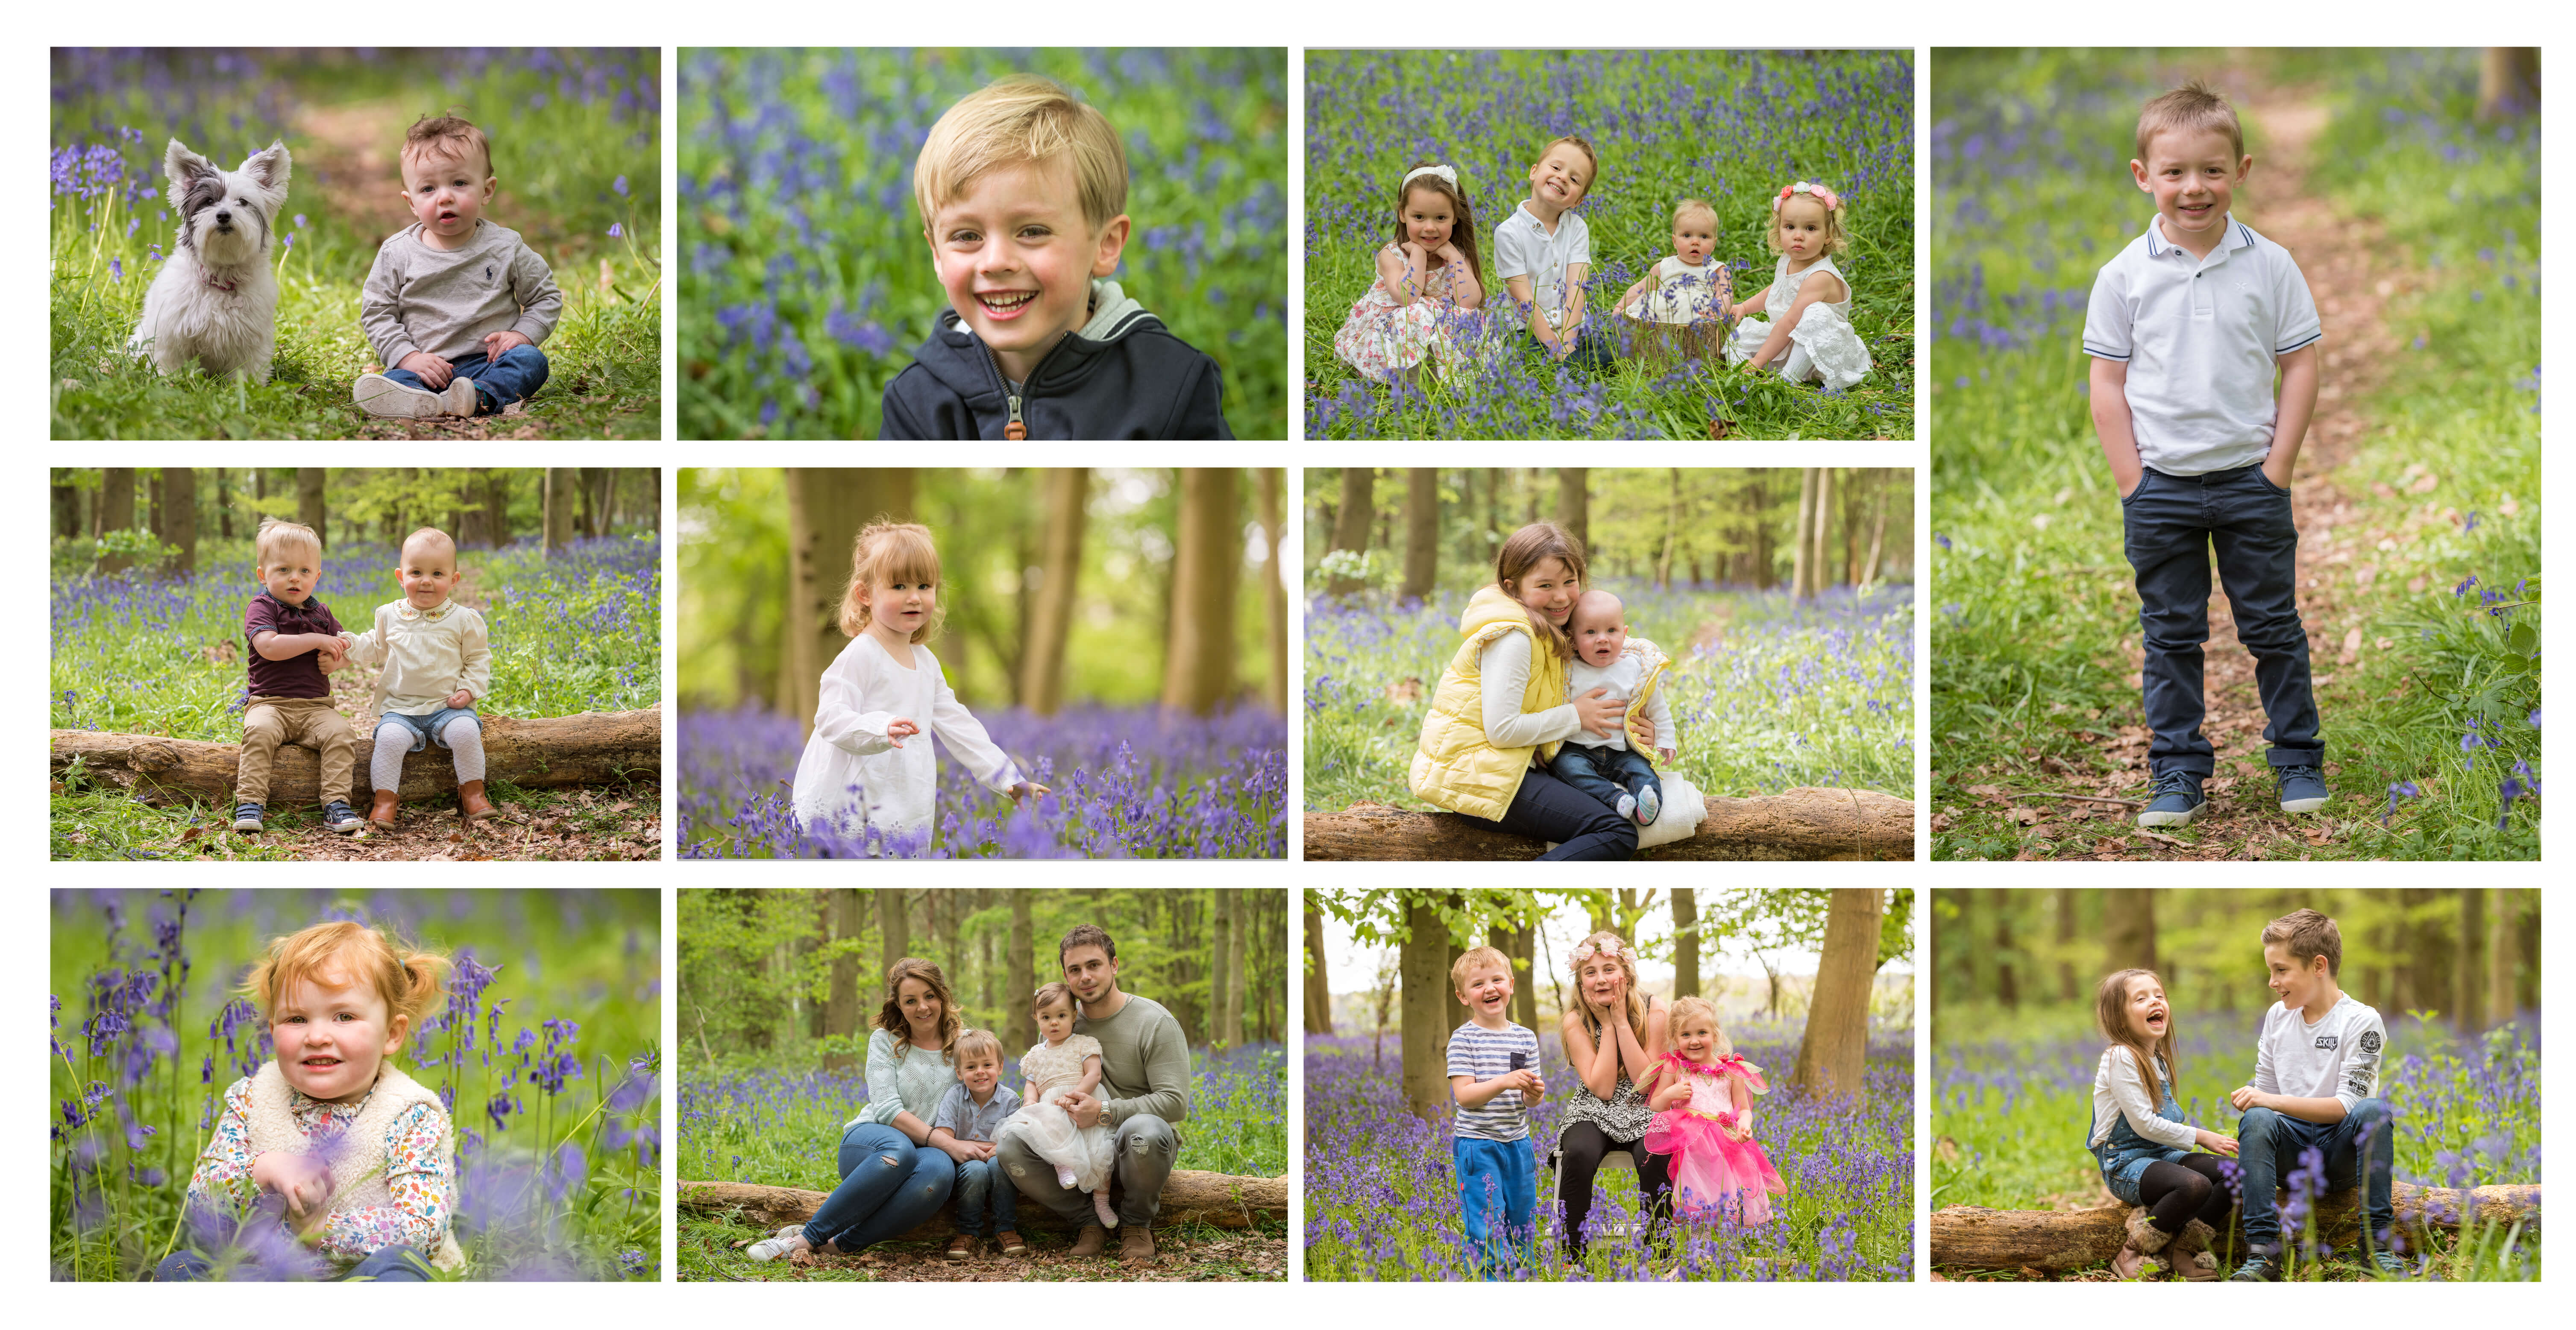 Slice of Life Photography - Collage of Bluebell Photoshoots, Location Photography by Lincolnshire Photographer Slice of Life Photography